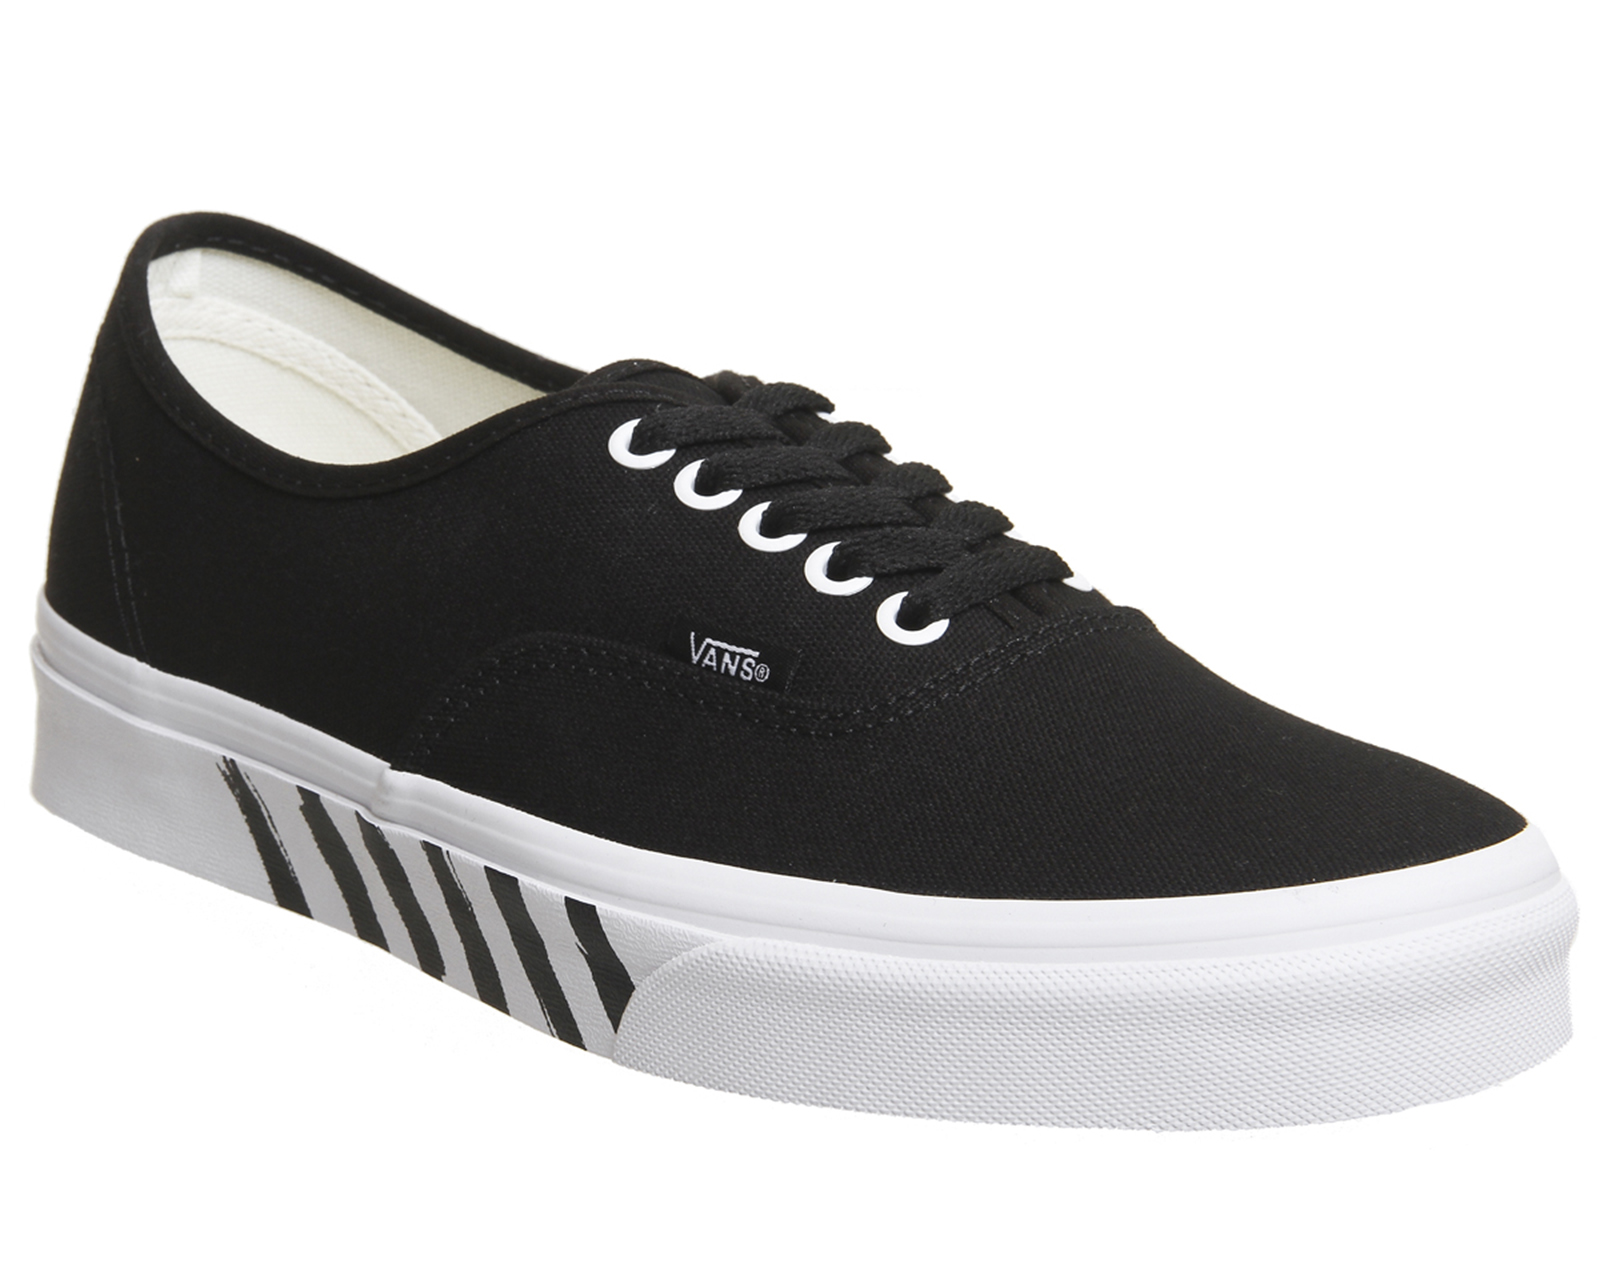 b260f0077f51b4 Sentinel Mens Vans Authentic Trainers Black True White Stripe Trainers Shoes